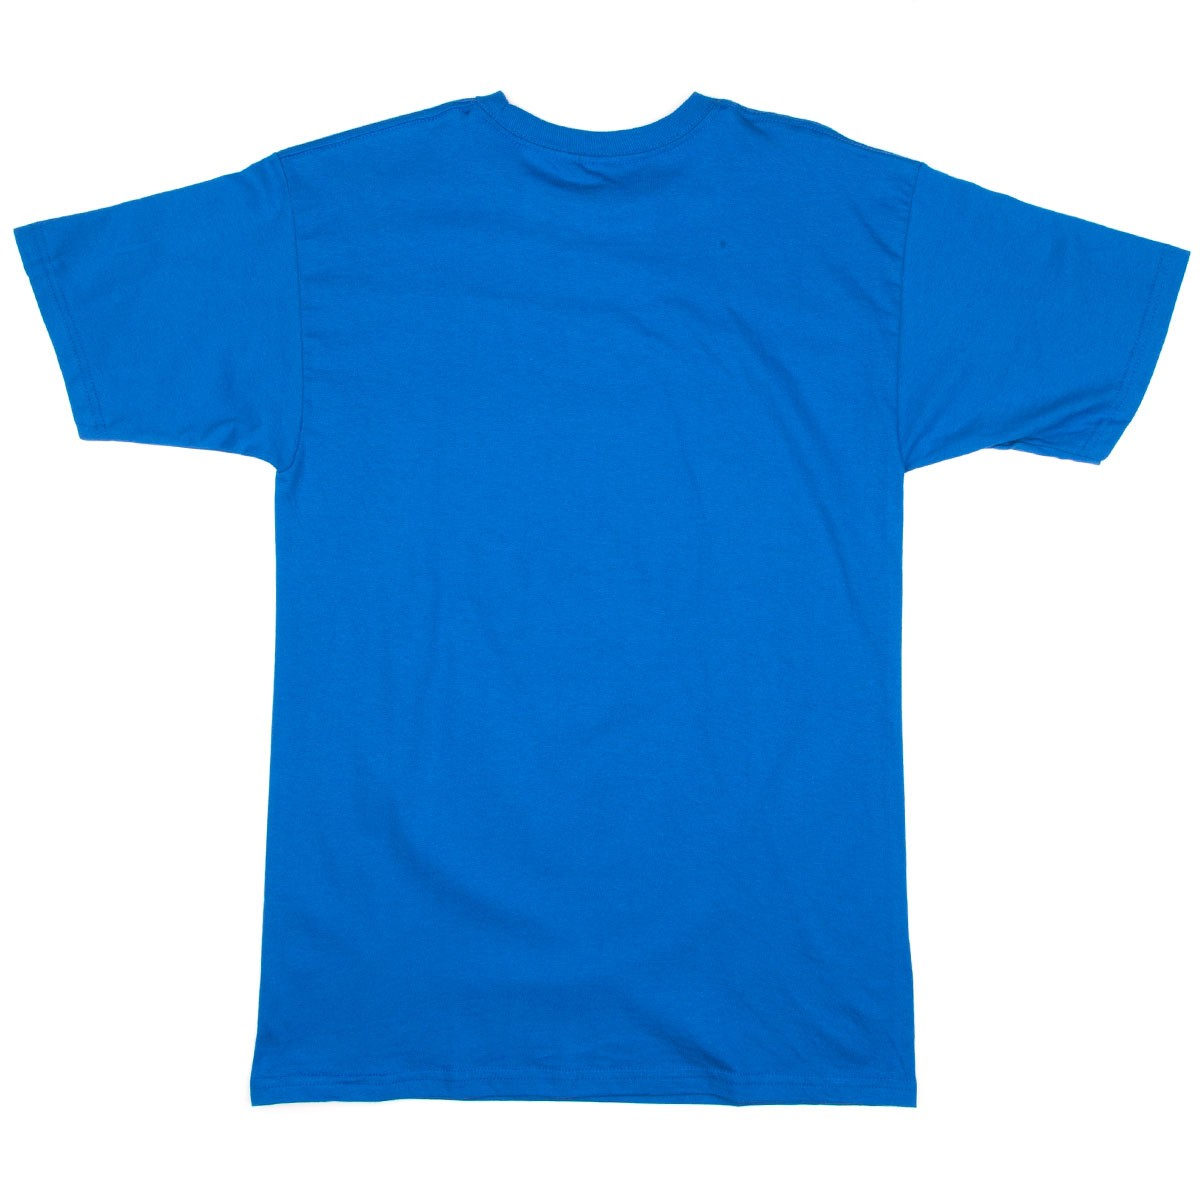 Blue & White China Blue Willow Design t-Shirt This basic t-shirt features a relaxed fit for the female shape. Made from % cotton, this t-shirt is both durable and soft - a great combination if you're looking for that casual wardrobe staple.